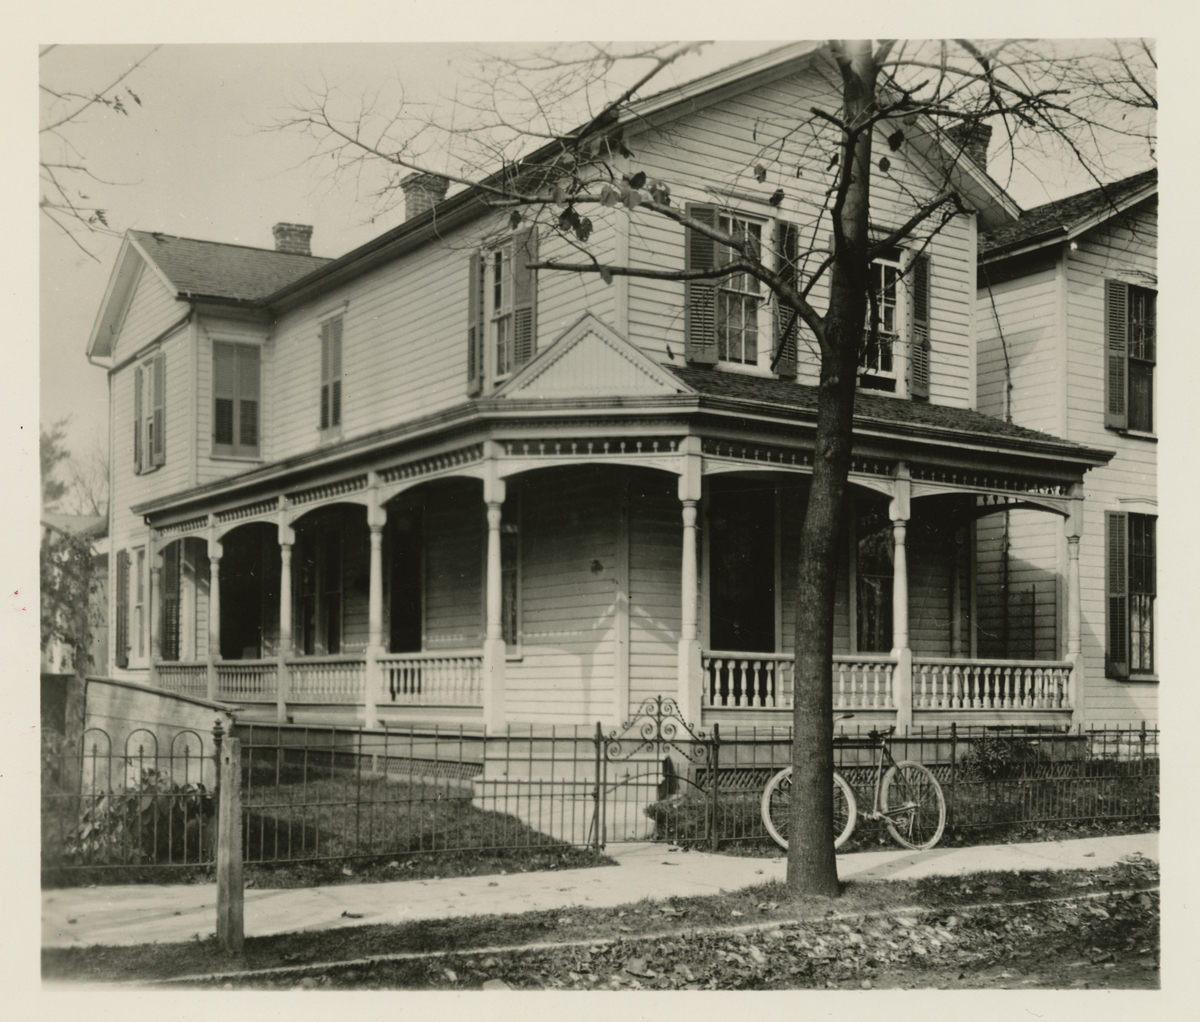 Outside view of two-story house with wrap-around porch and bicycle propped against fence